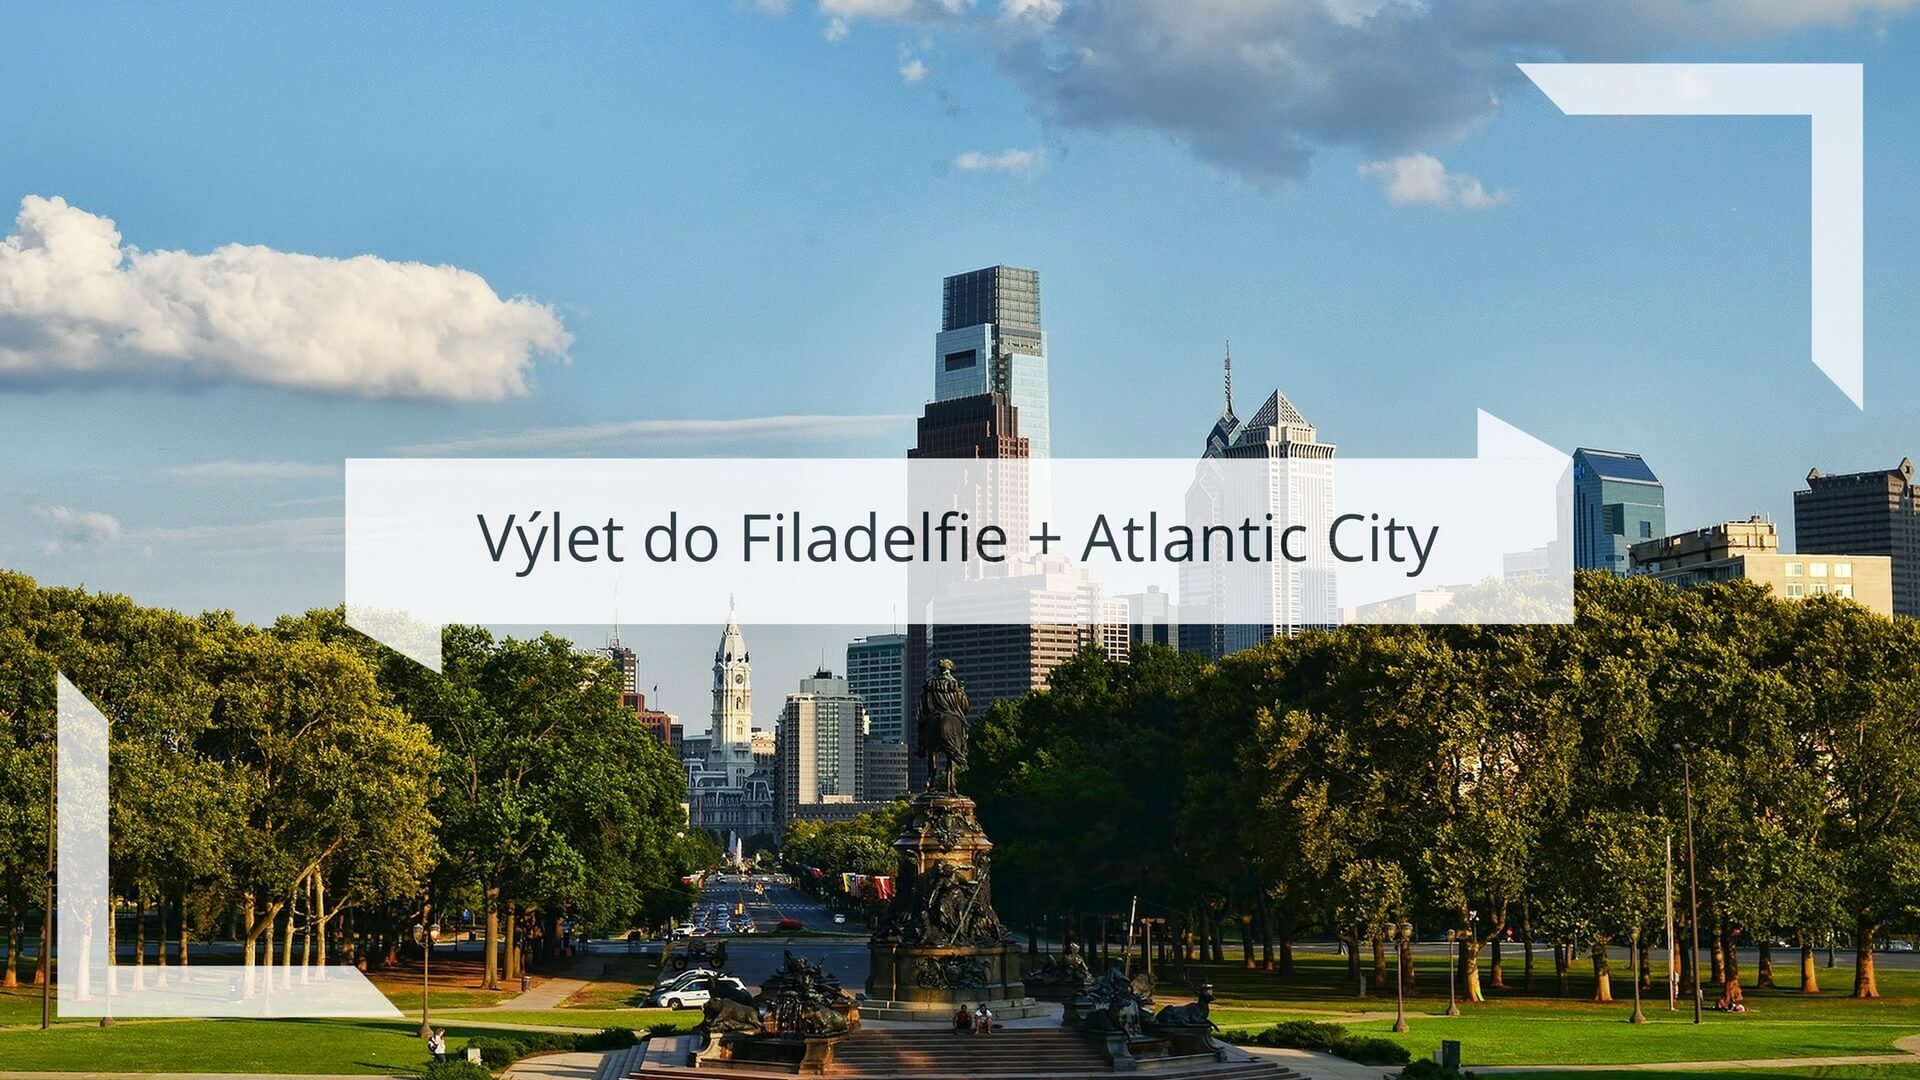 Výlet do Filadelfie + Atlantic City